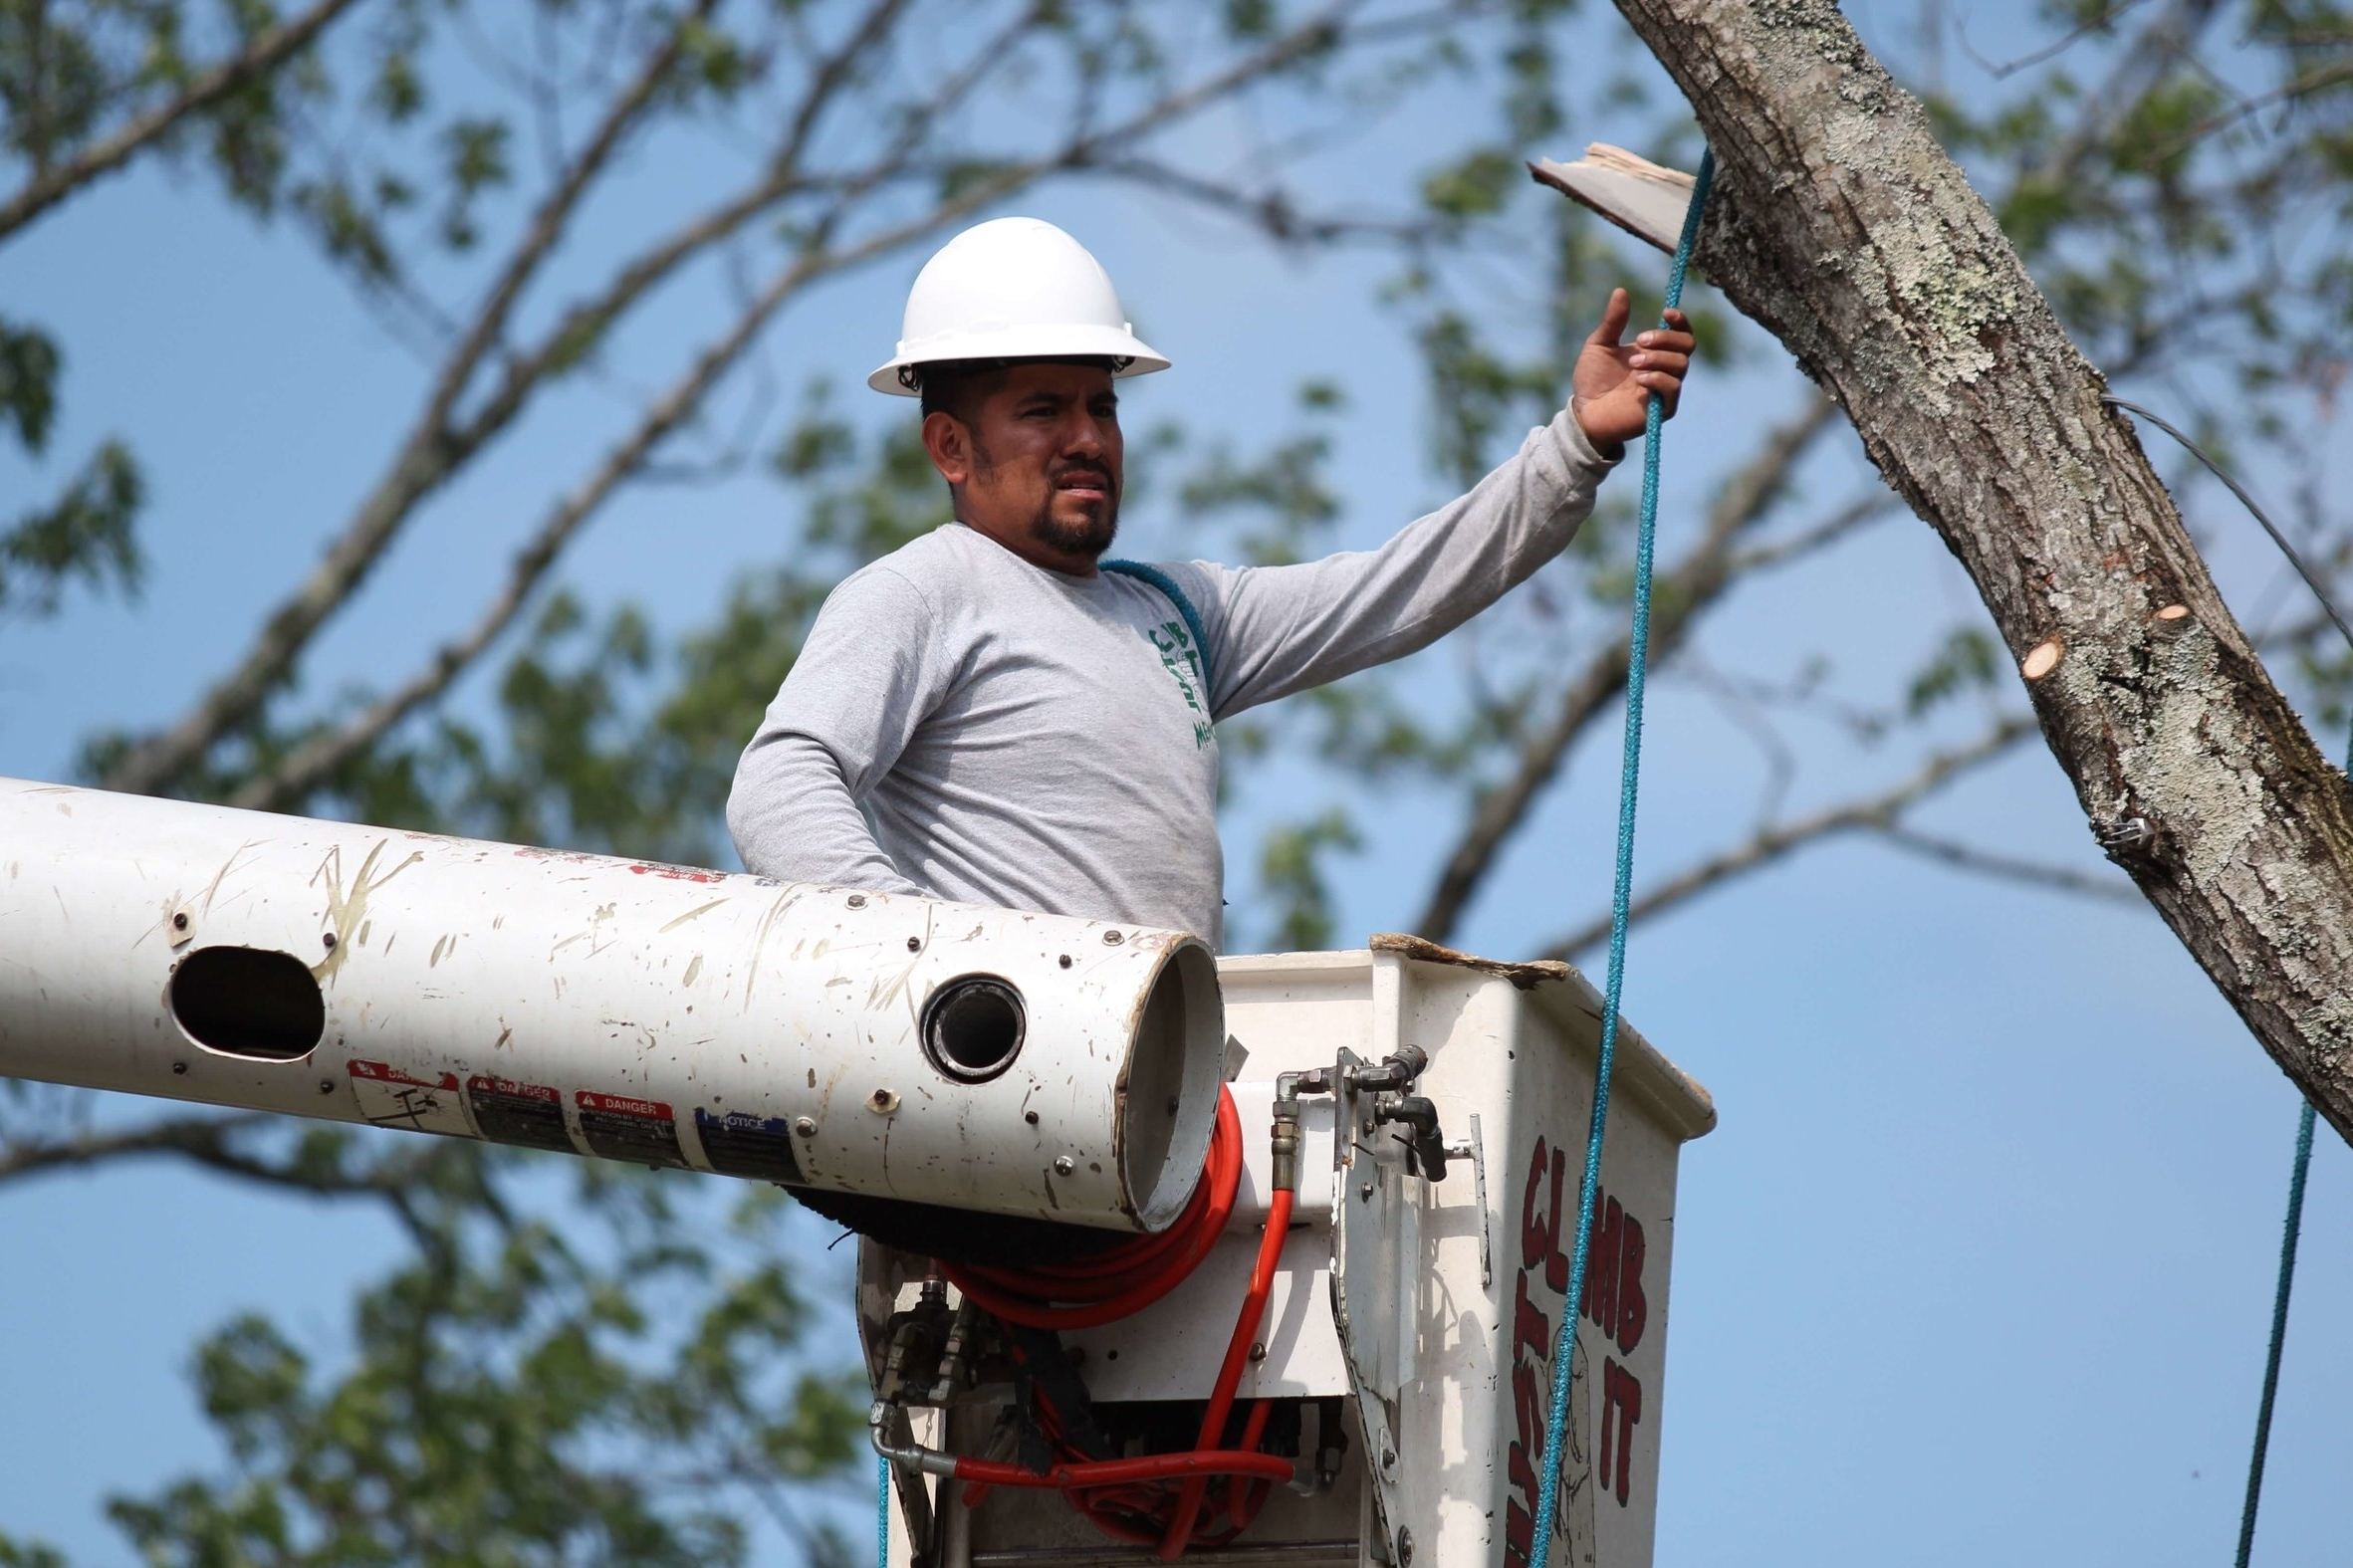 Mencer's Tree Service professional in bucket truck pruning and trimming a tree